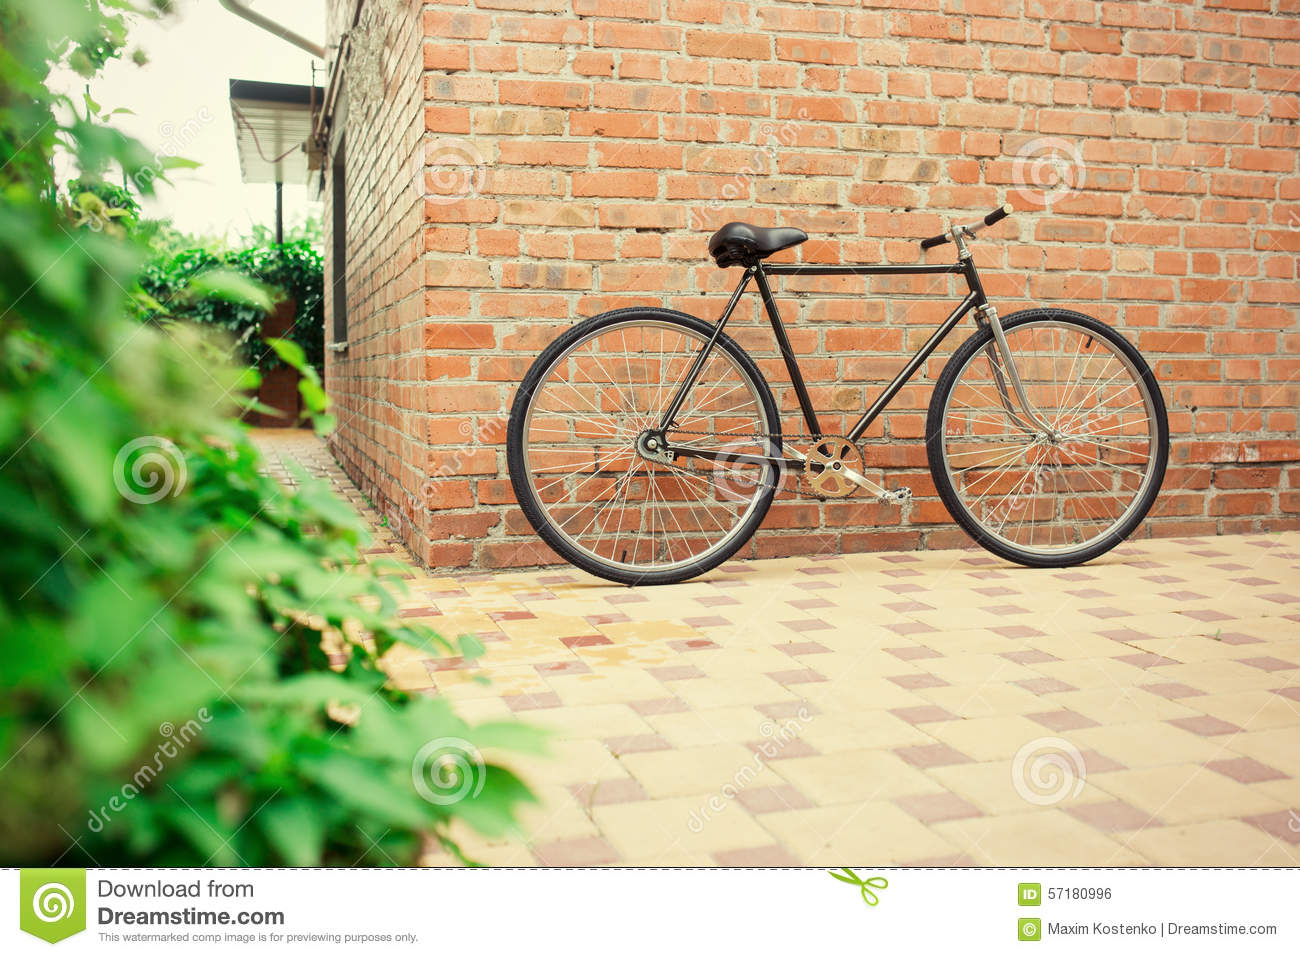 Old style singlespeed bicycle against brick wall